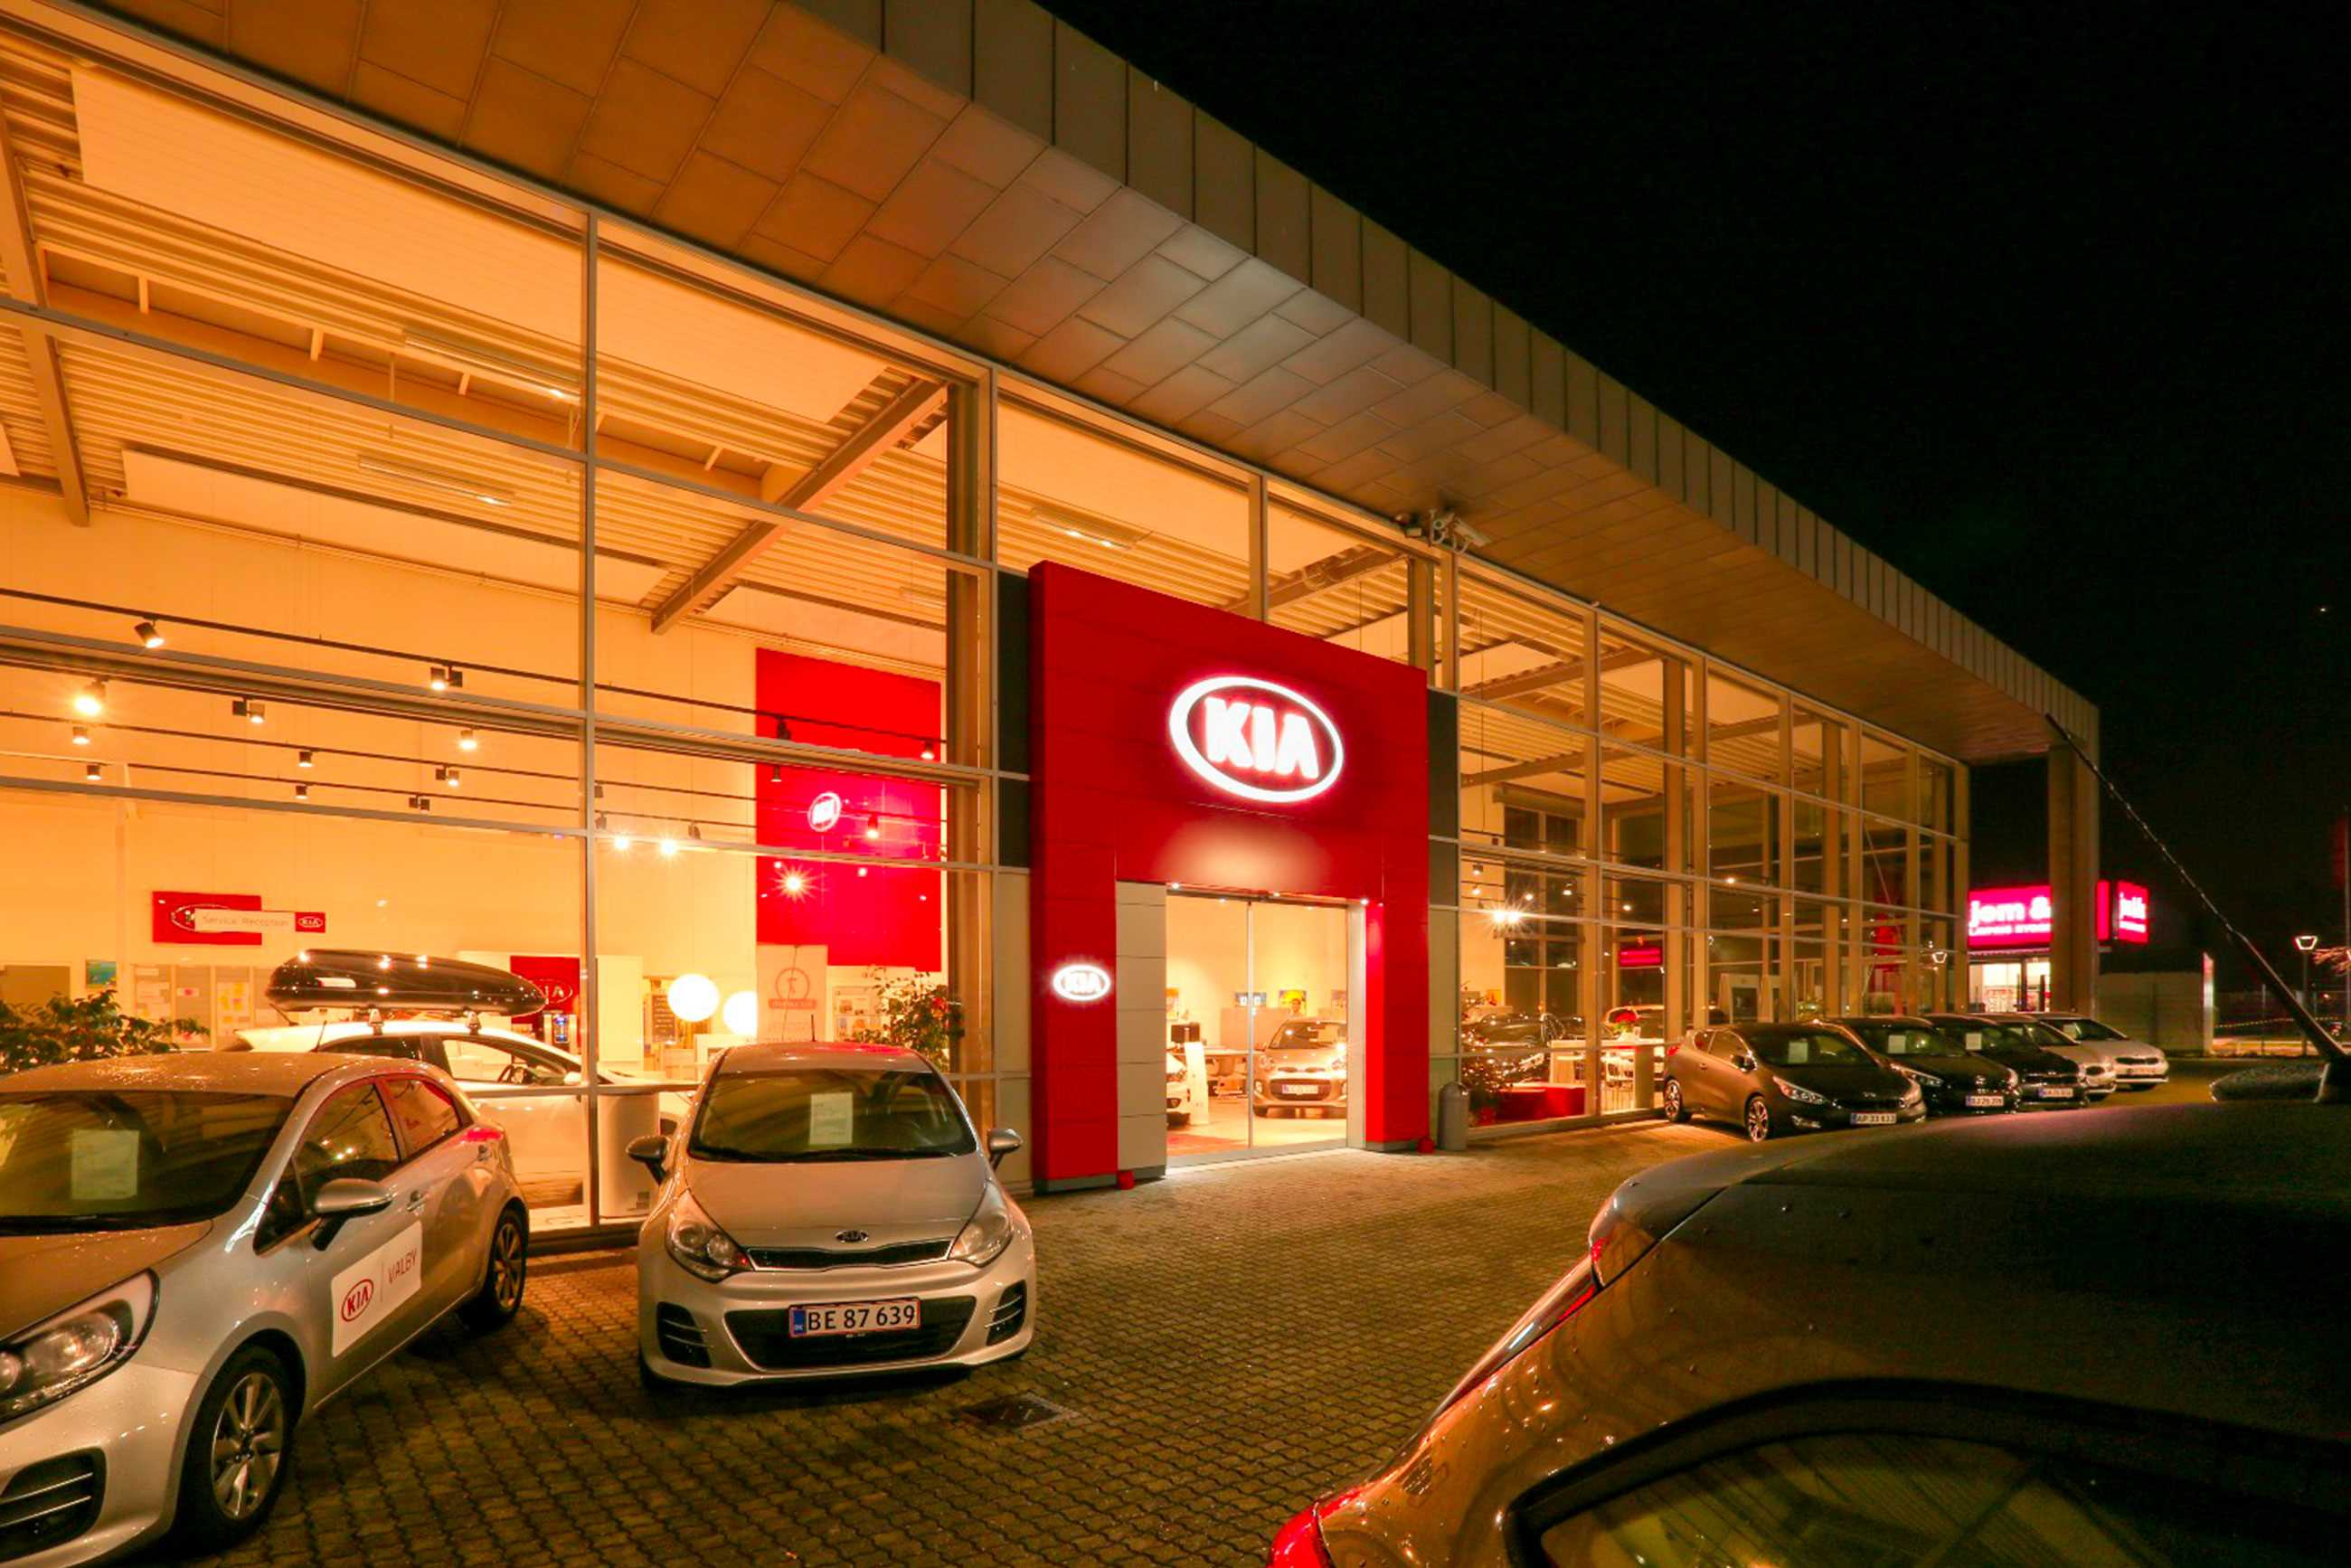 KIA & MG Valby - Nellemann A/S